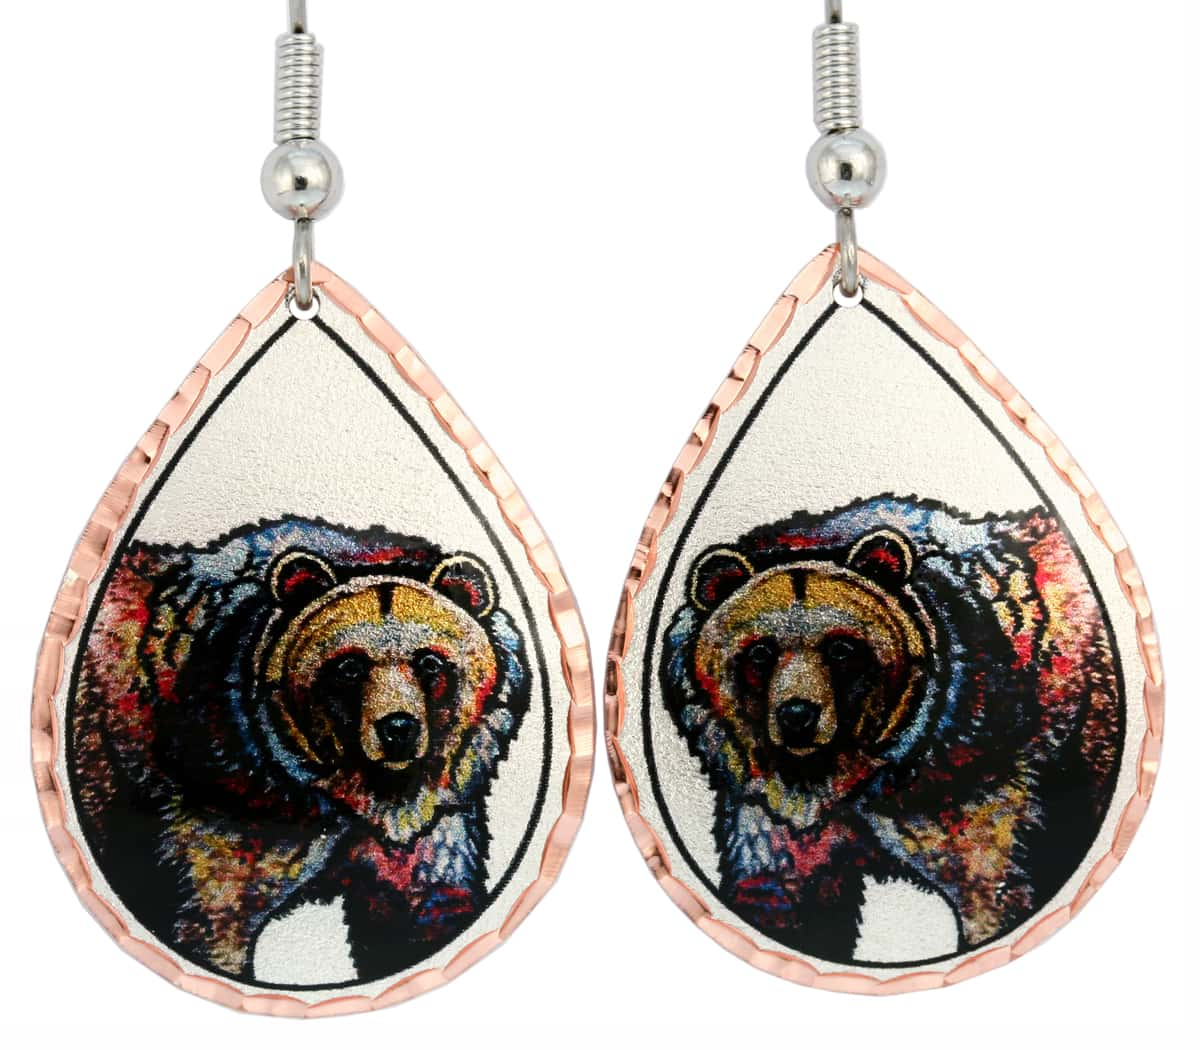 Wildlife Art Jewelry, Bear Earrings Created in Radiant Colors